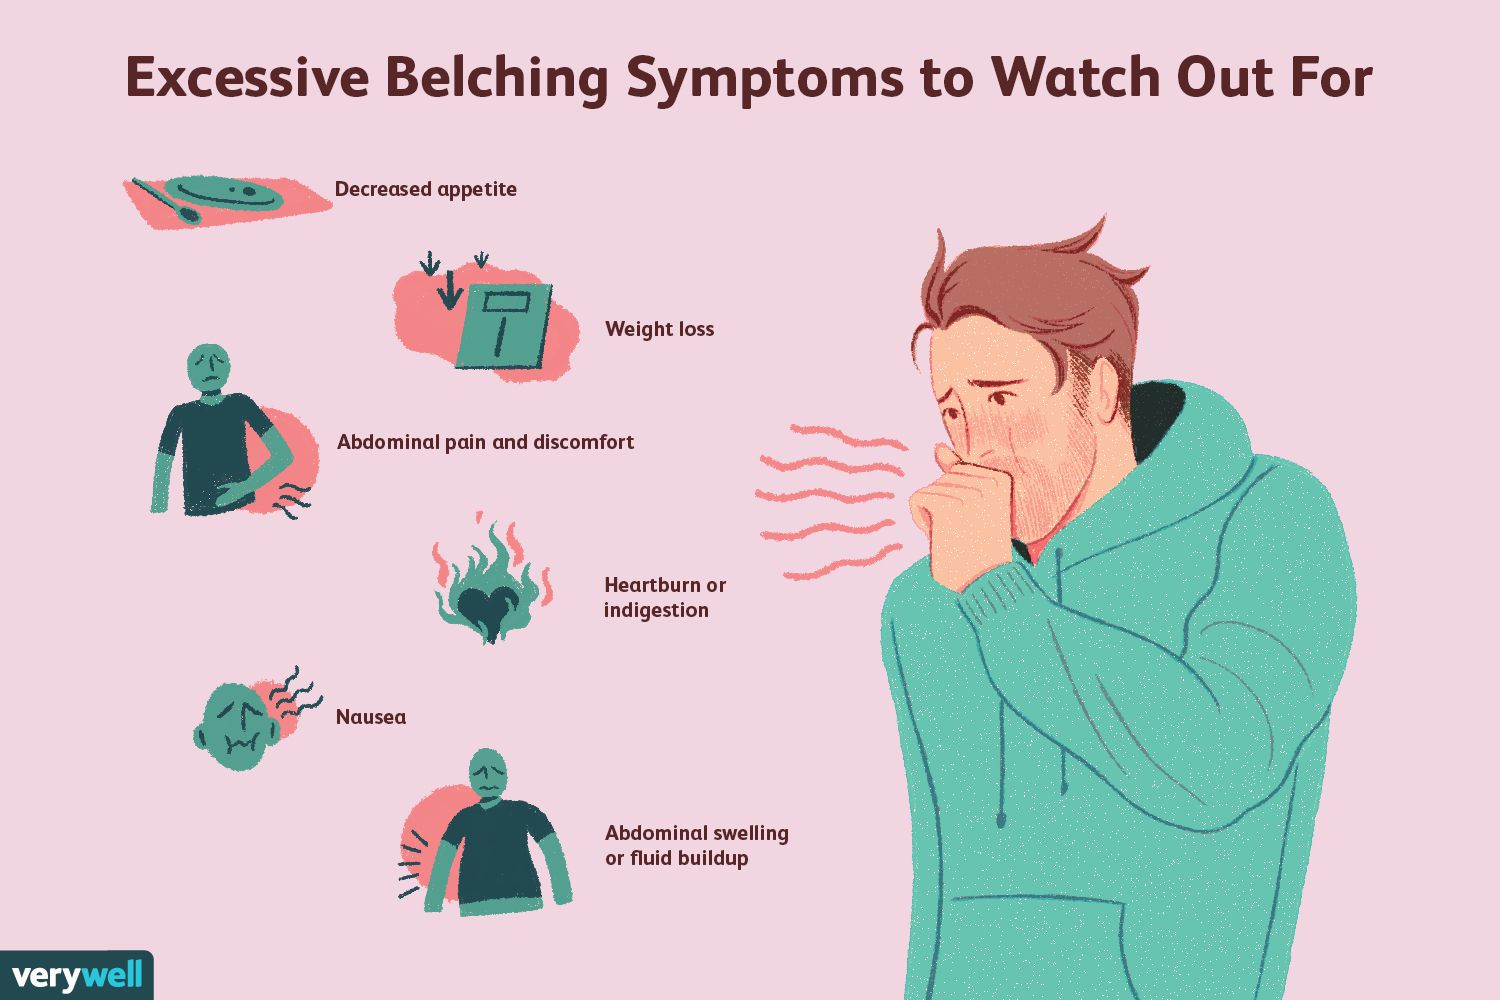 Excessive Belching Symptoms to Watch Out For